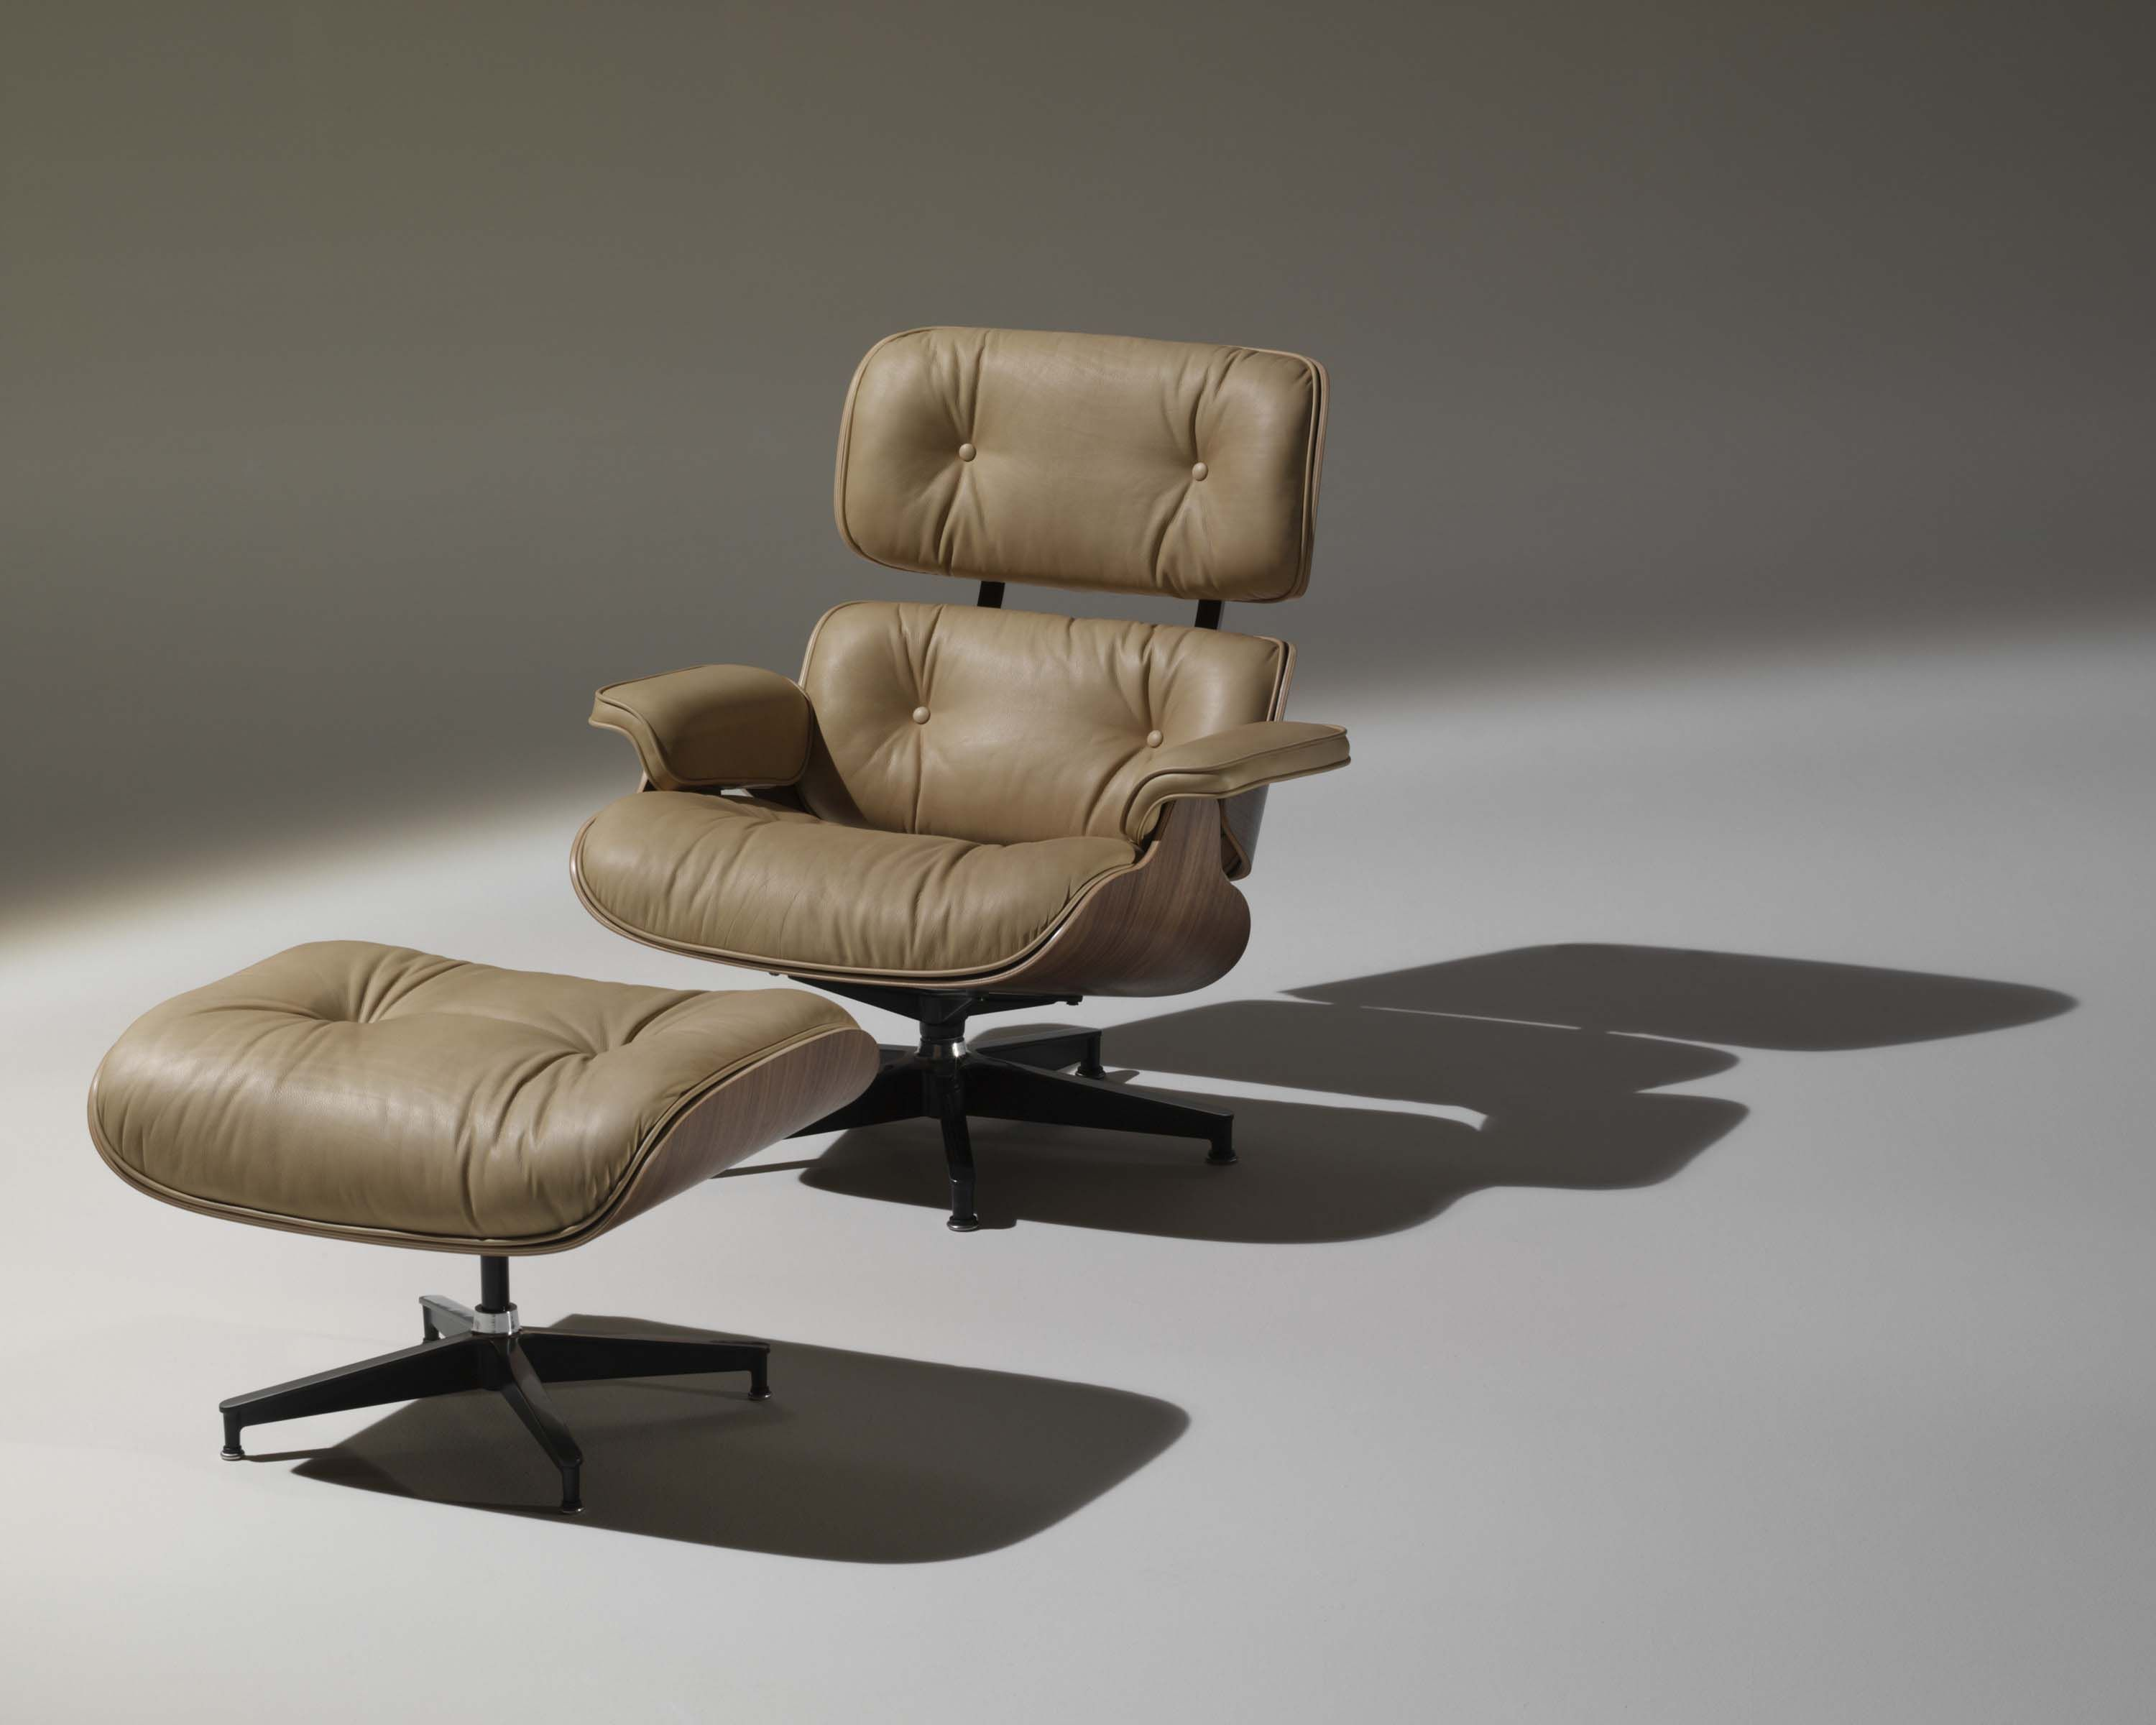 Lovely Alternative Leather Upholstery For An Authentic Eames Lounge Chair  And Ottoman By @hermanmiller #eames #eameschair